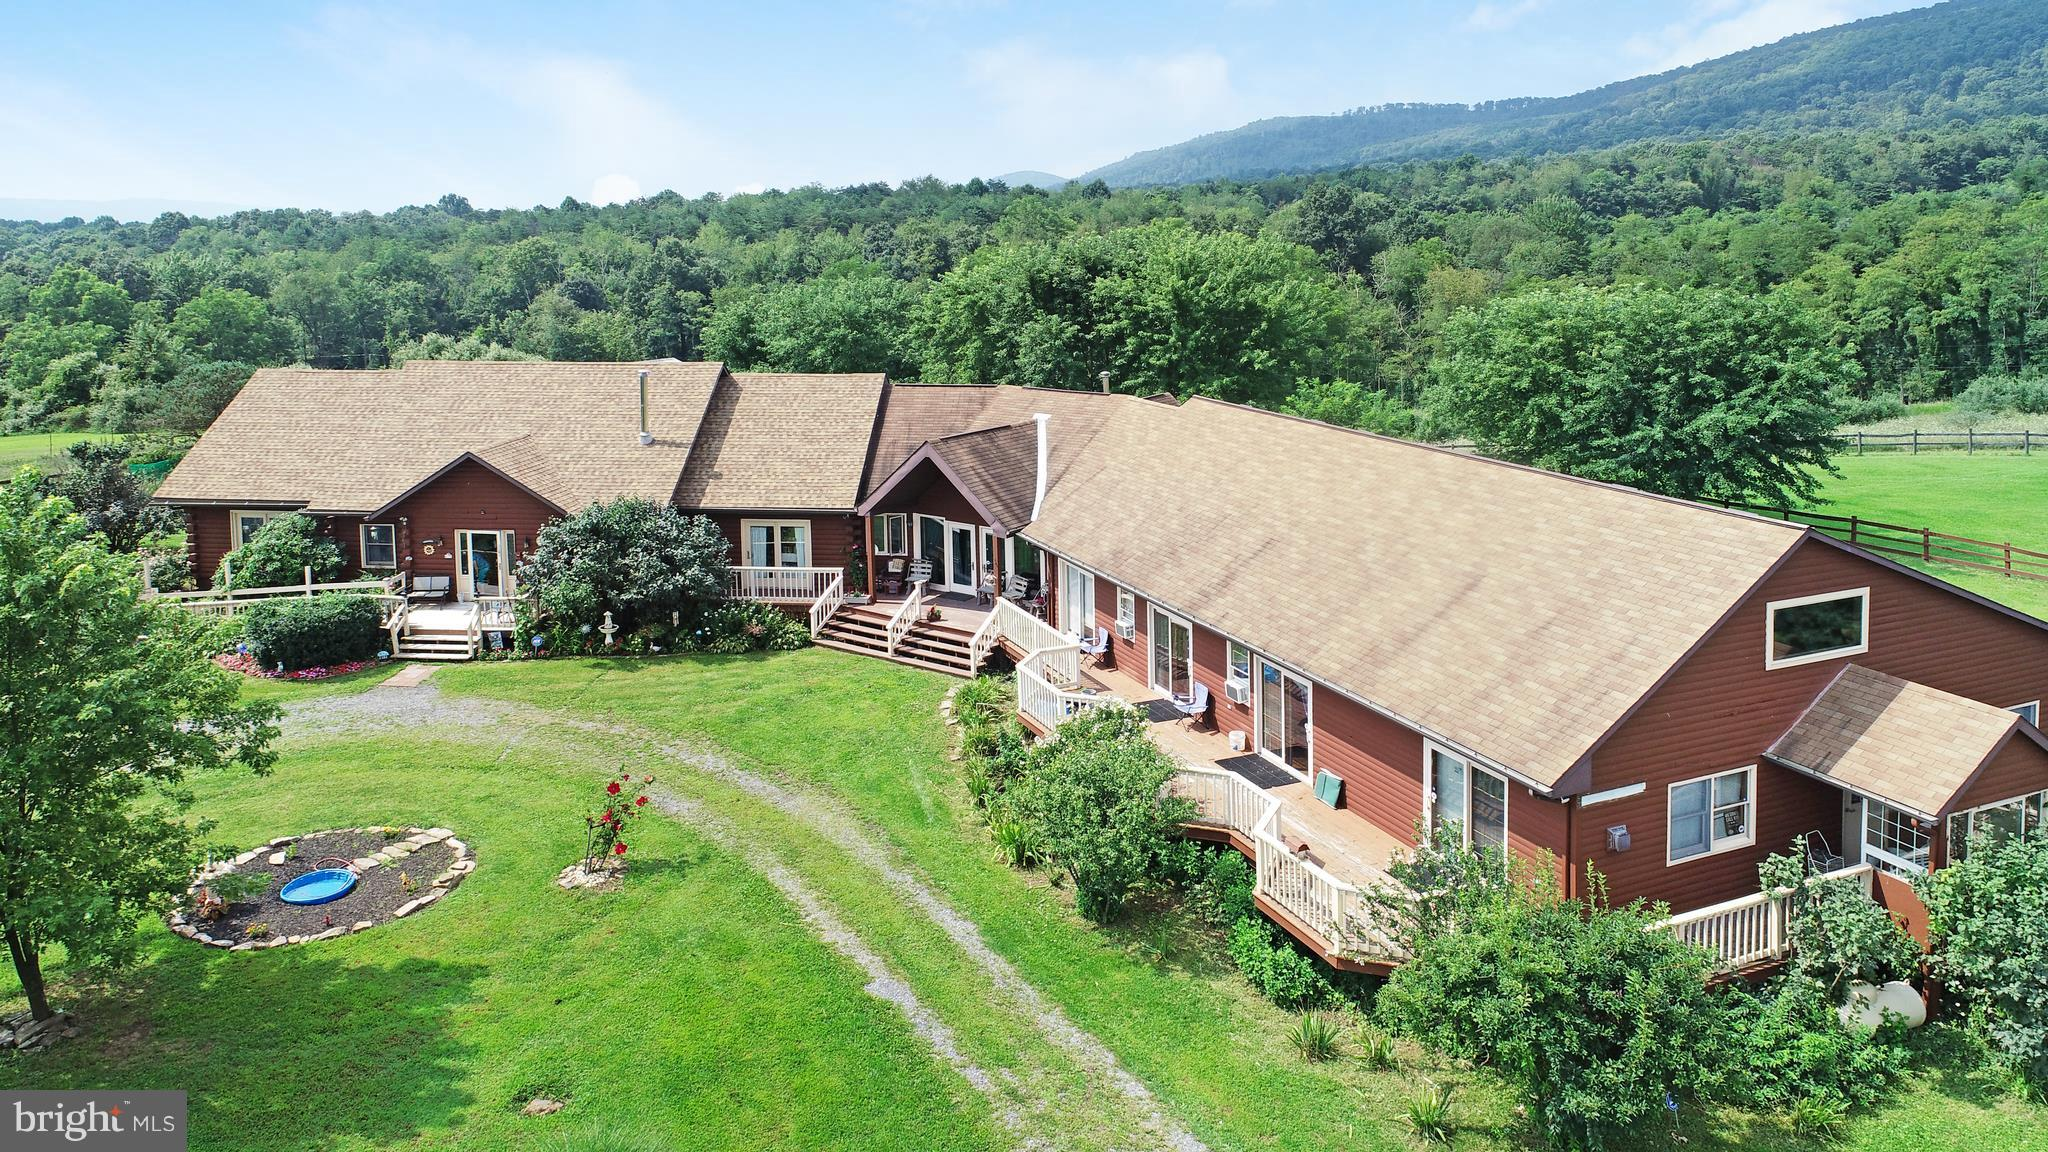 2179 LAYTON ROAD, WARFORDSBURG, PA 17267